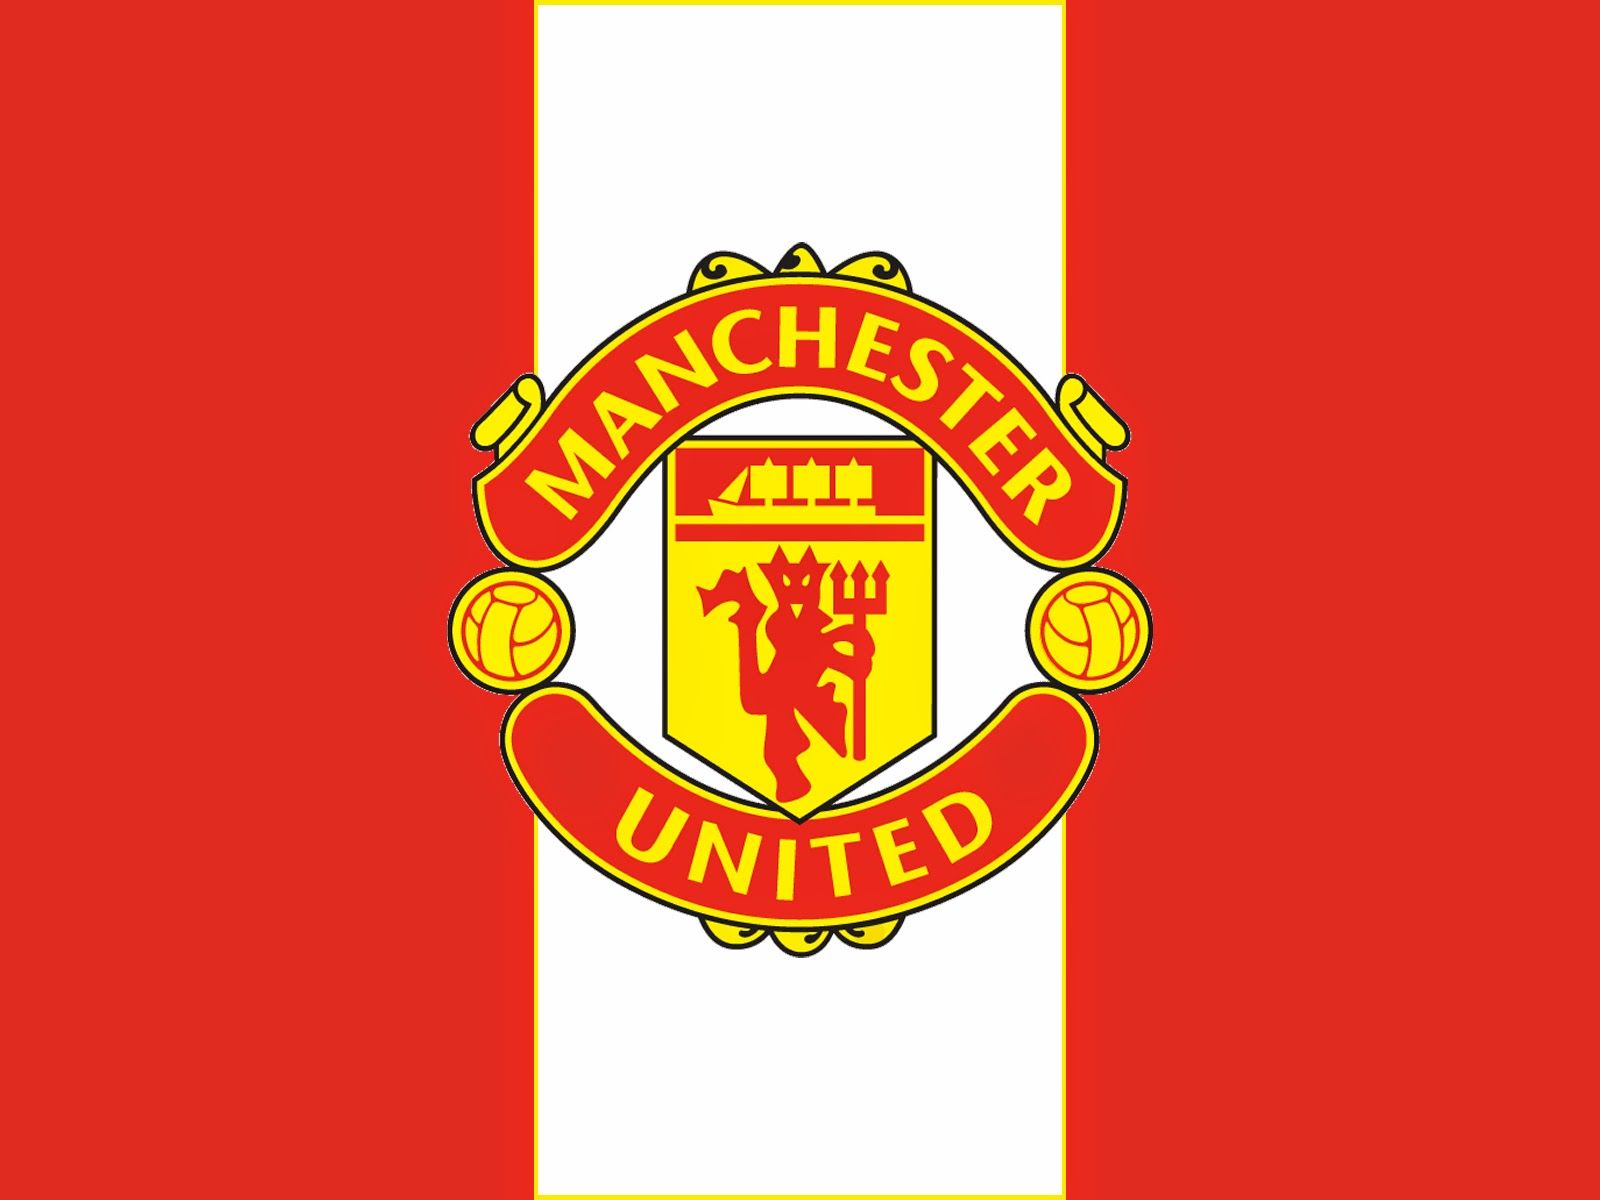 Manchester united wallpapers collection for free download hd manchester united wallpapers collection for free download voltagebd Images